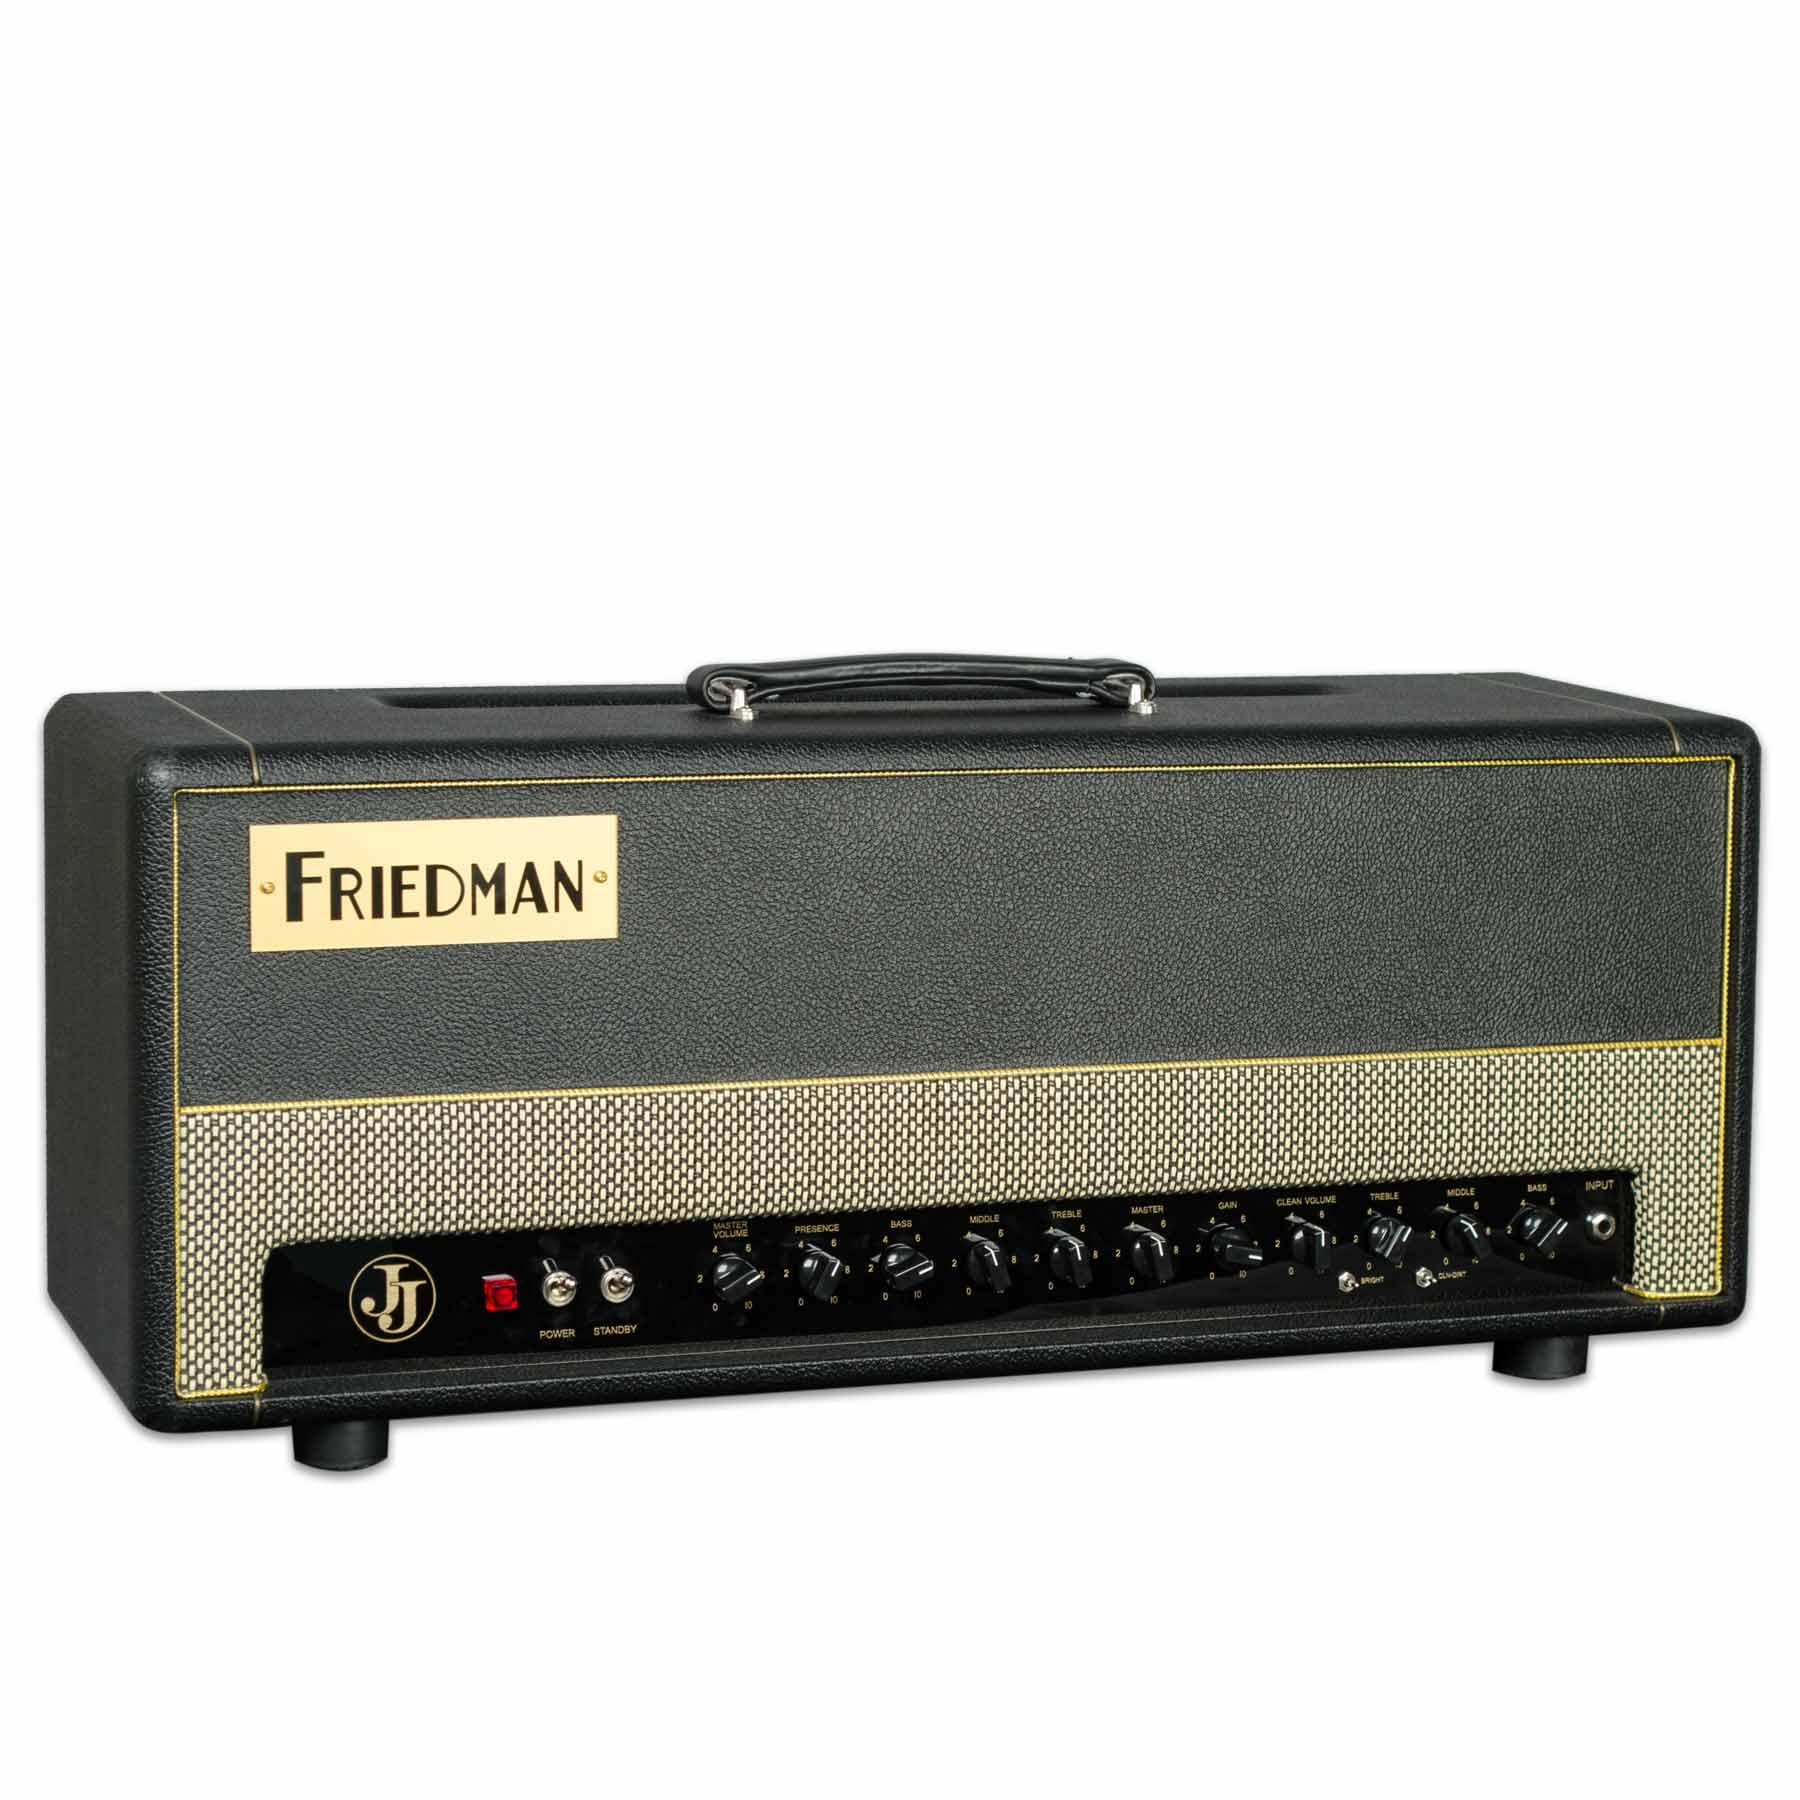 FRIEDMAN JERRY CANTRELL GUITAR AMPLIFIER HEAD